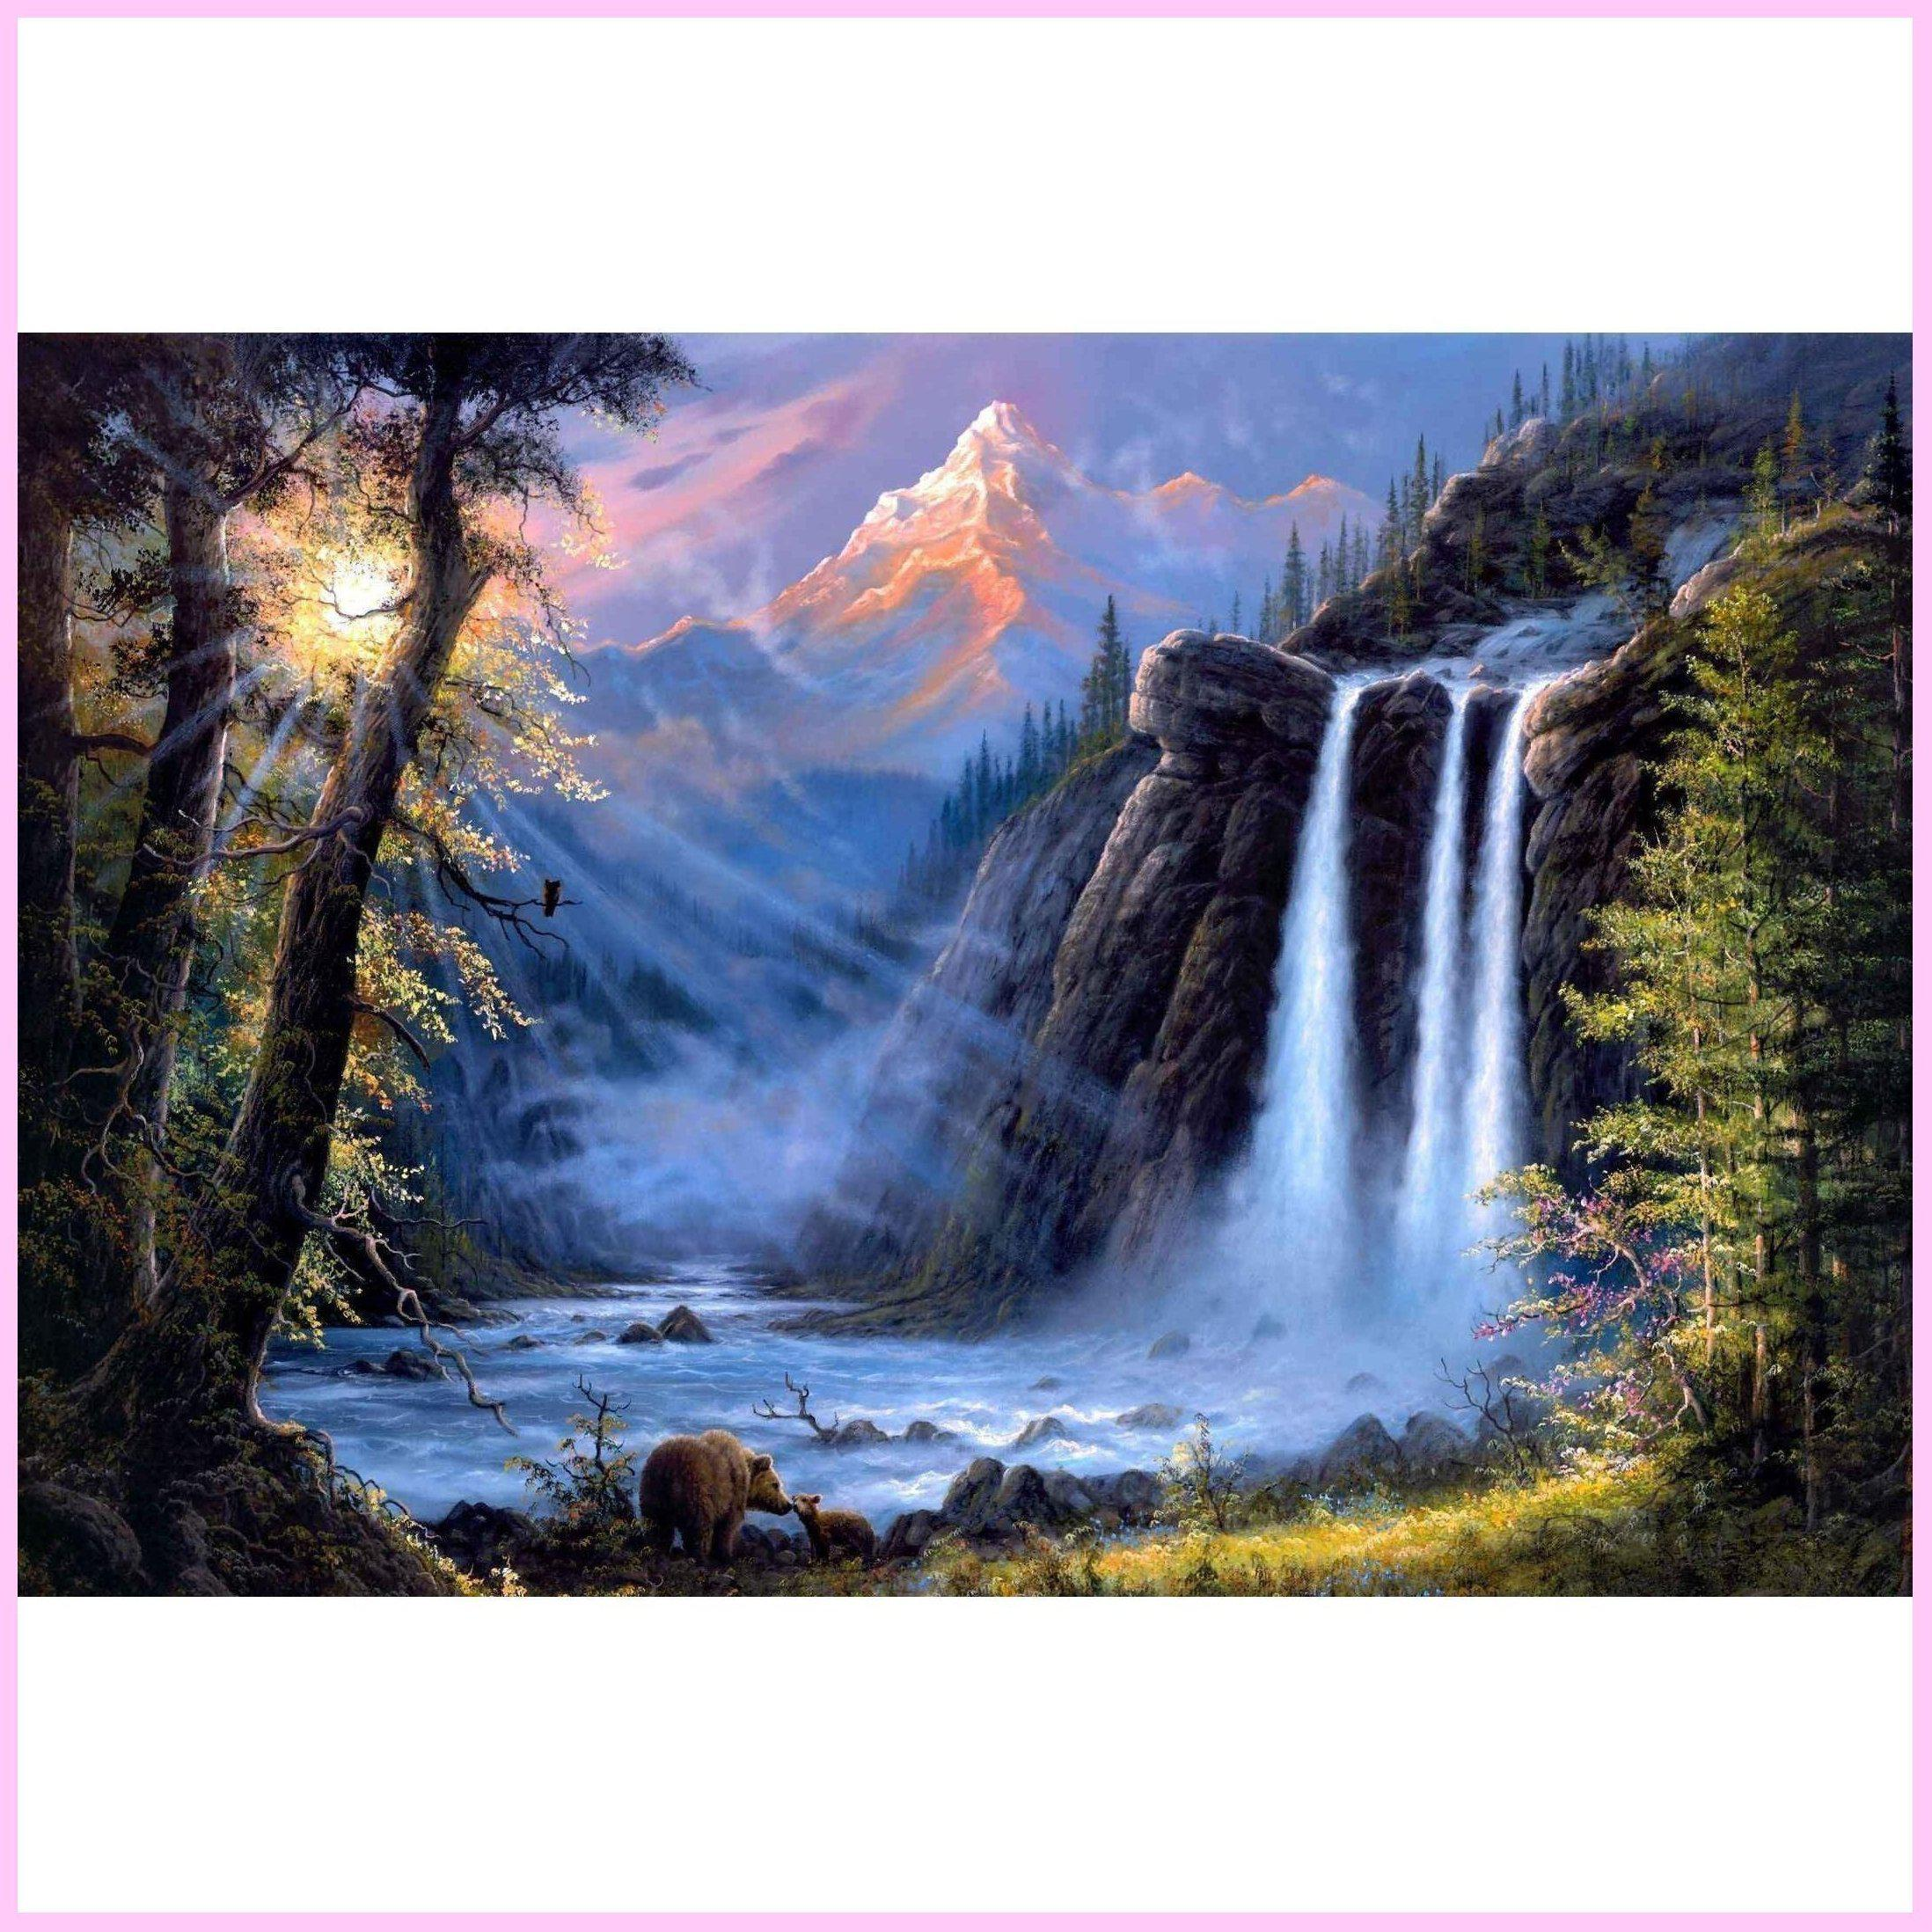 Pristine Waterfall Sunrise-Diamond Painting Kit-40x50cm (16x20 in)-Square-Heartful Diamonds